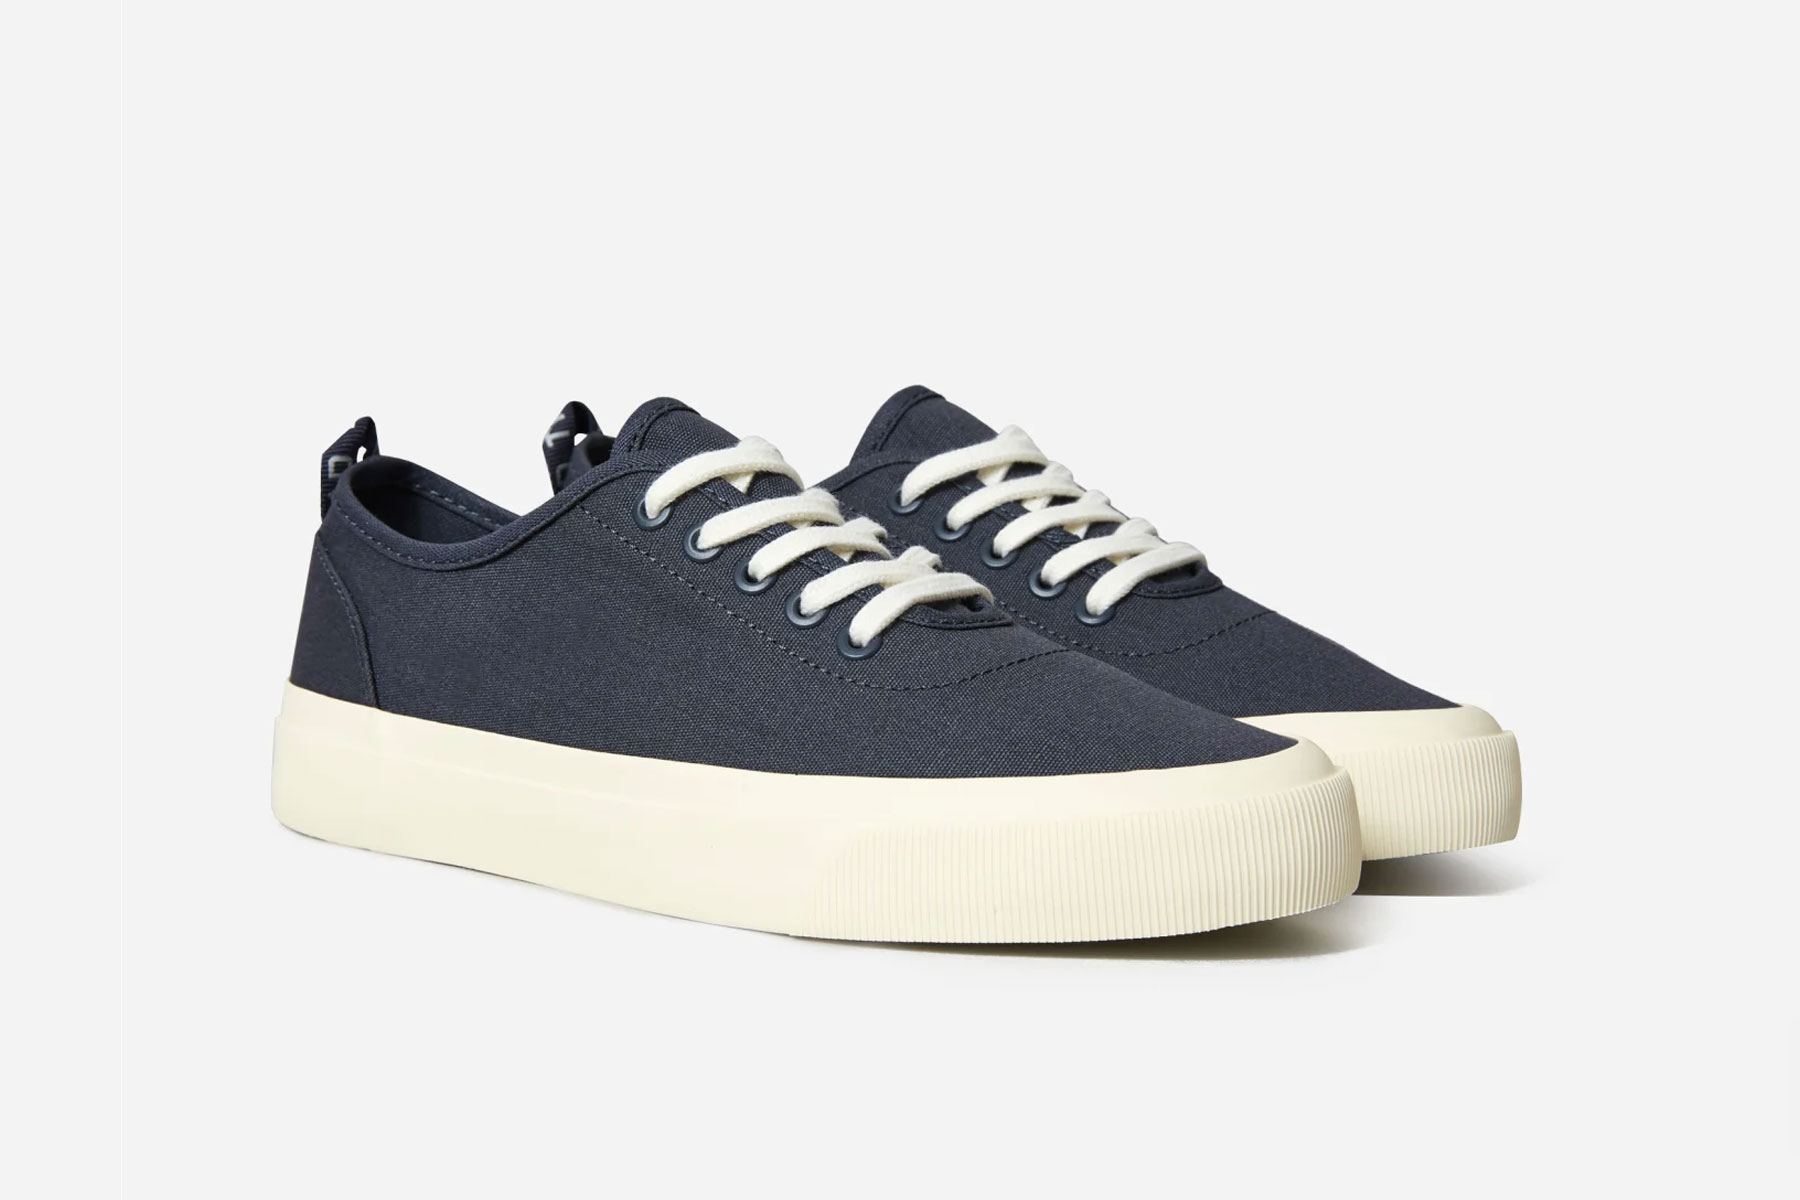 Navy and white canvas sneakers